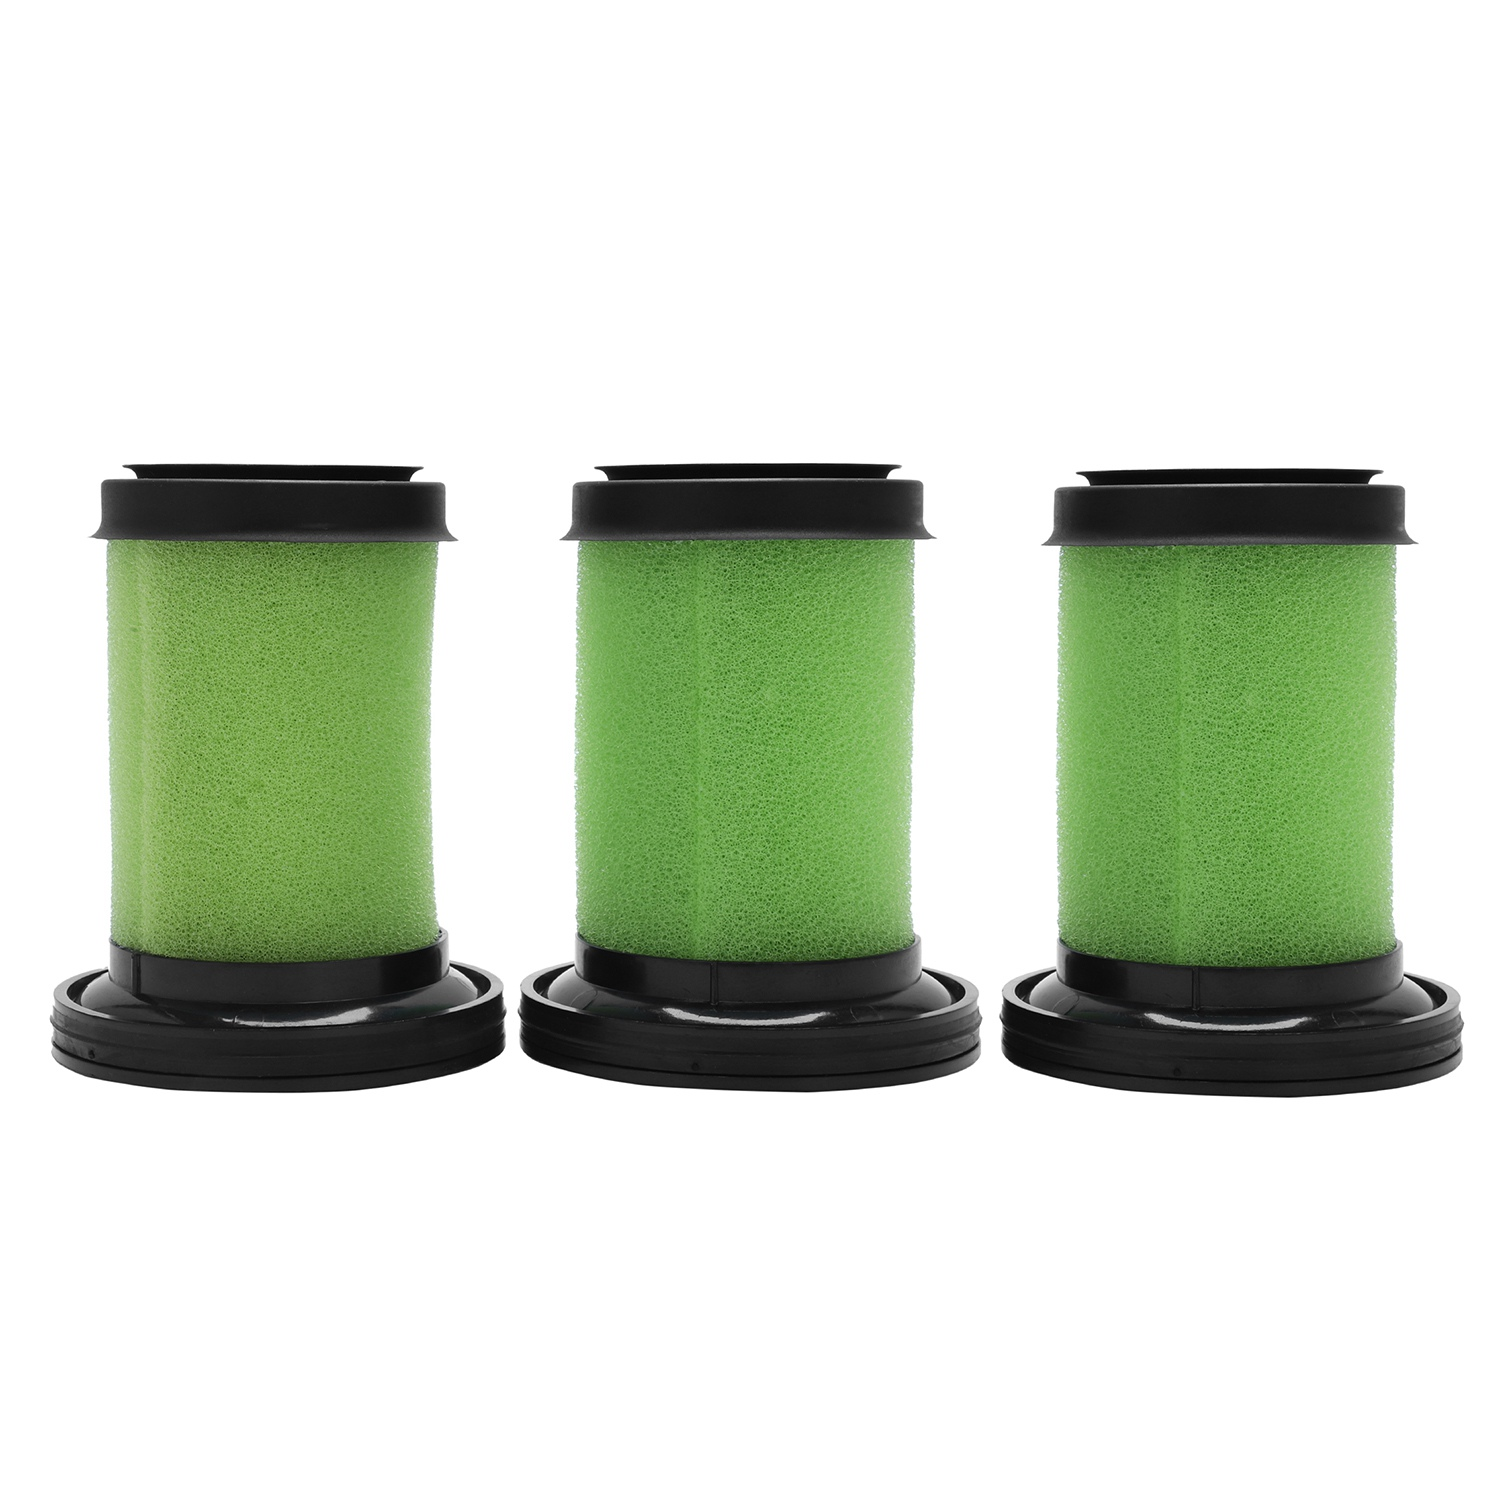 все цены на Hot Sale Washable Foam Filters for GTech Multi Cordless Vacuum Cleaner (Green/Black, Pack of 3)